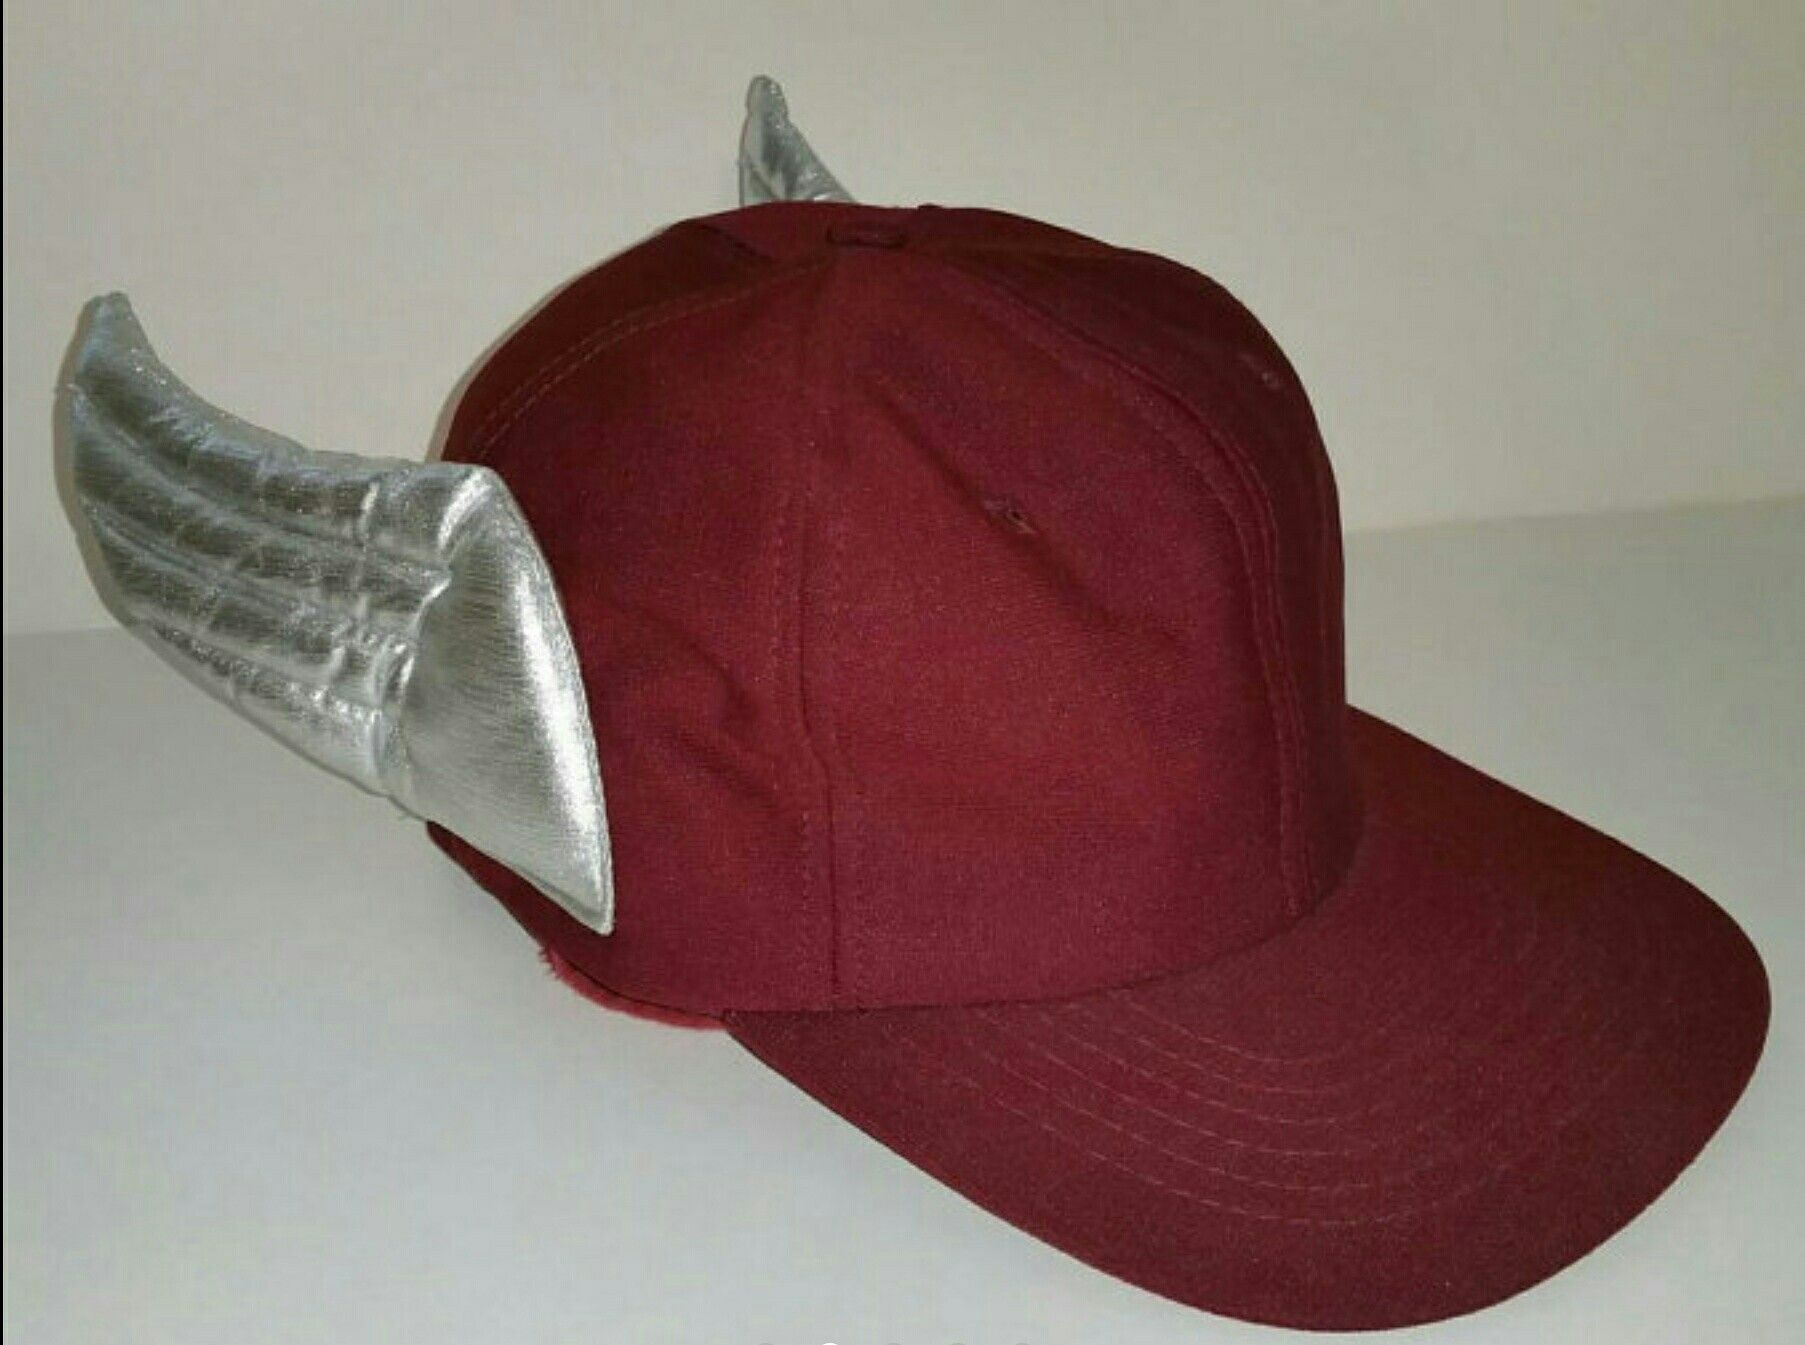 c8900976604af9 Vintage Vegimals Winged Hat 1978, Extremely Rare, Hard to Find,  Freemountain Toys Original, Collectible, Burgundy & Silver Foil Wings